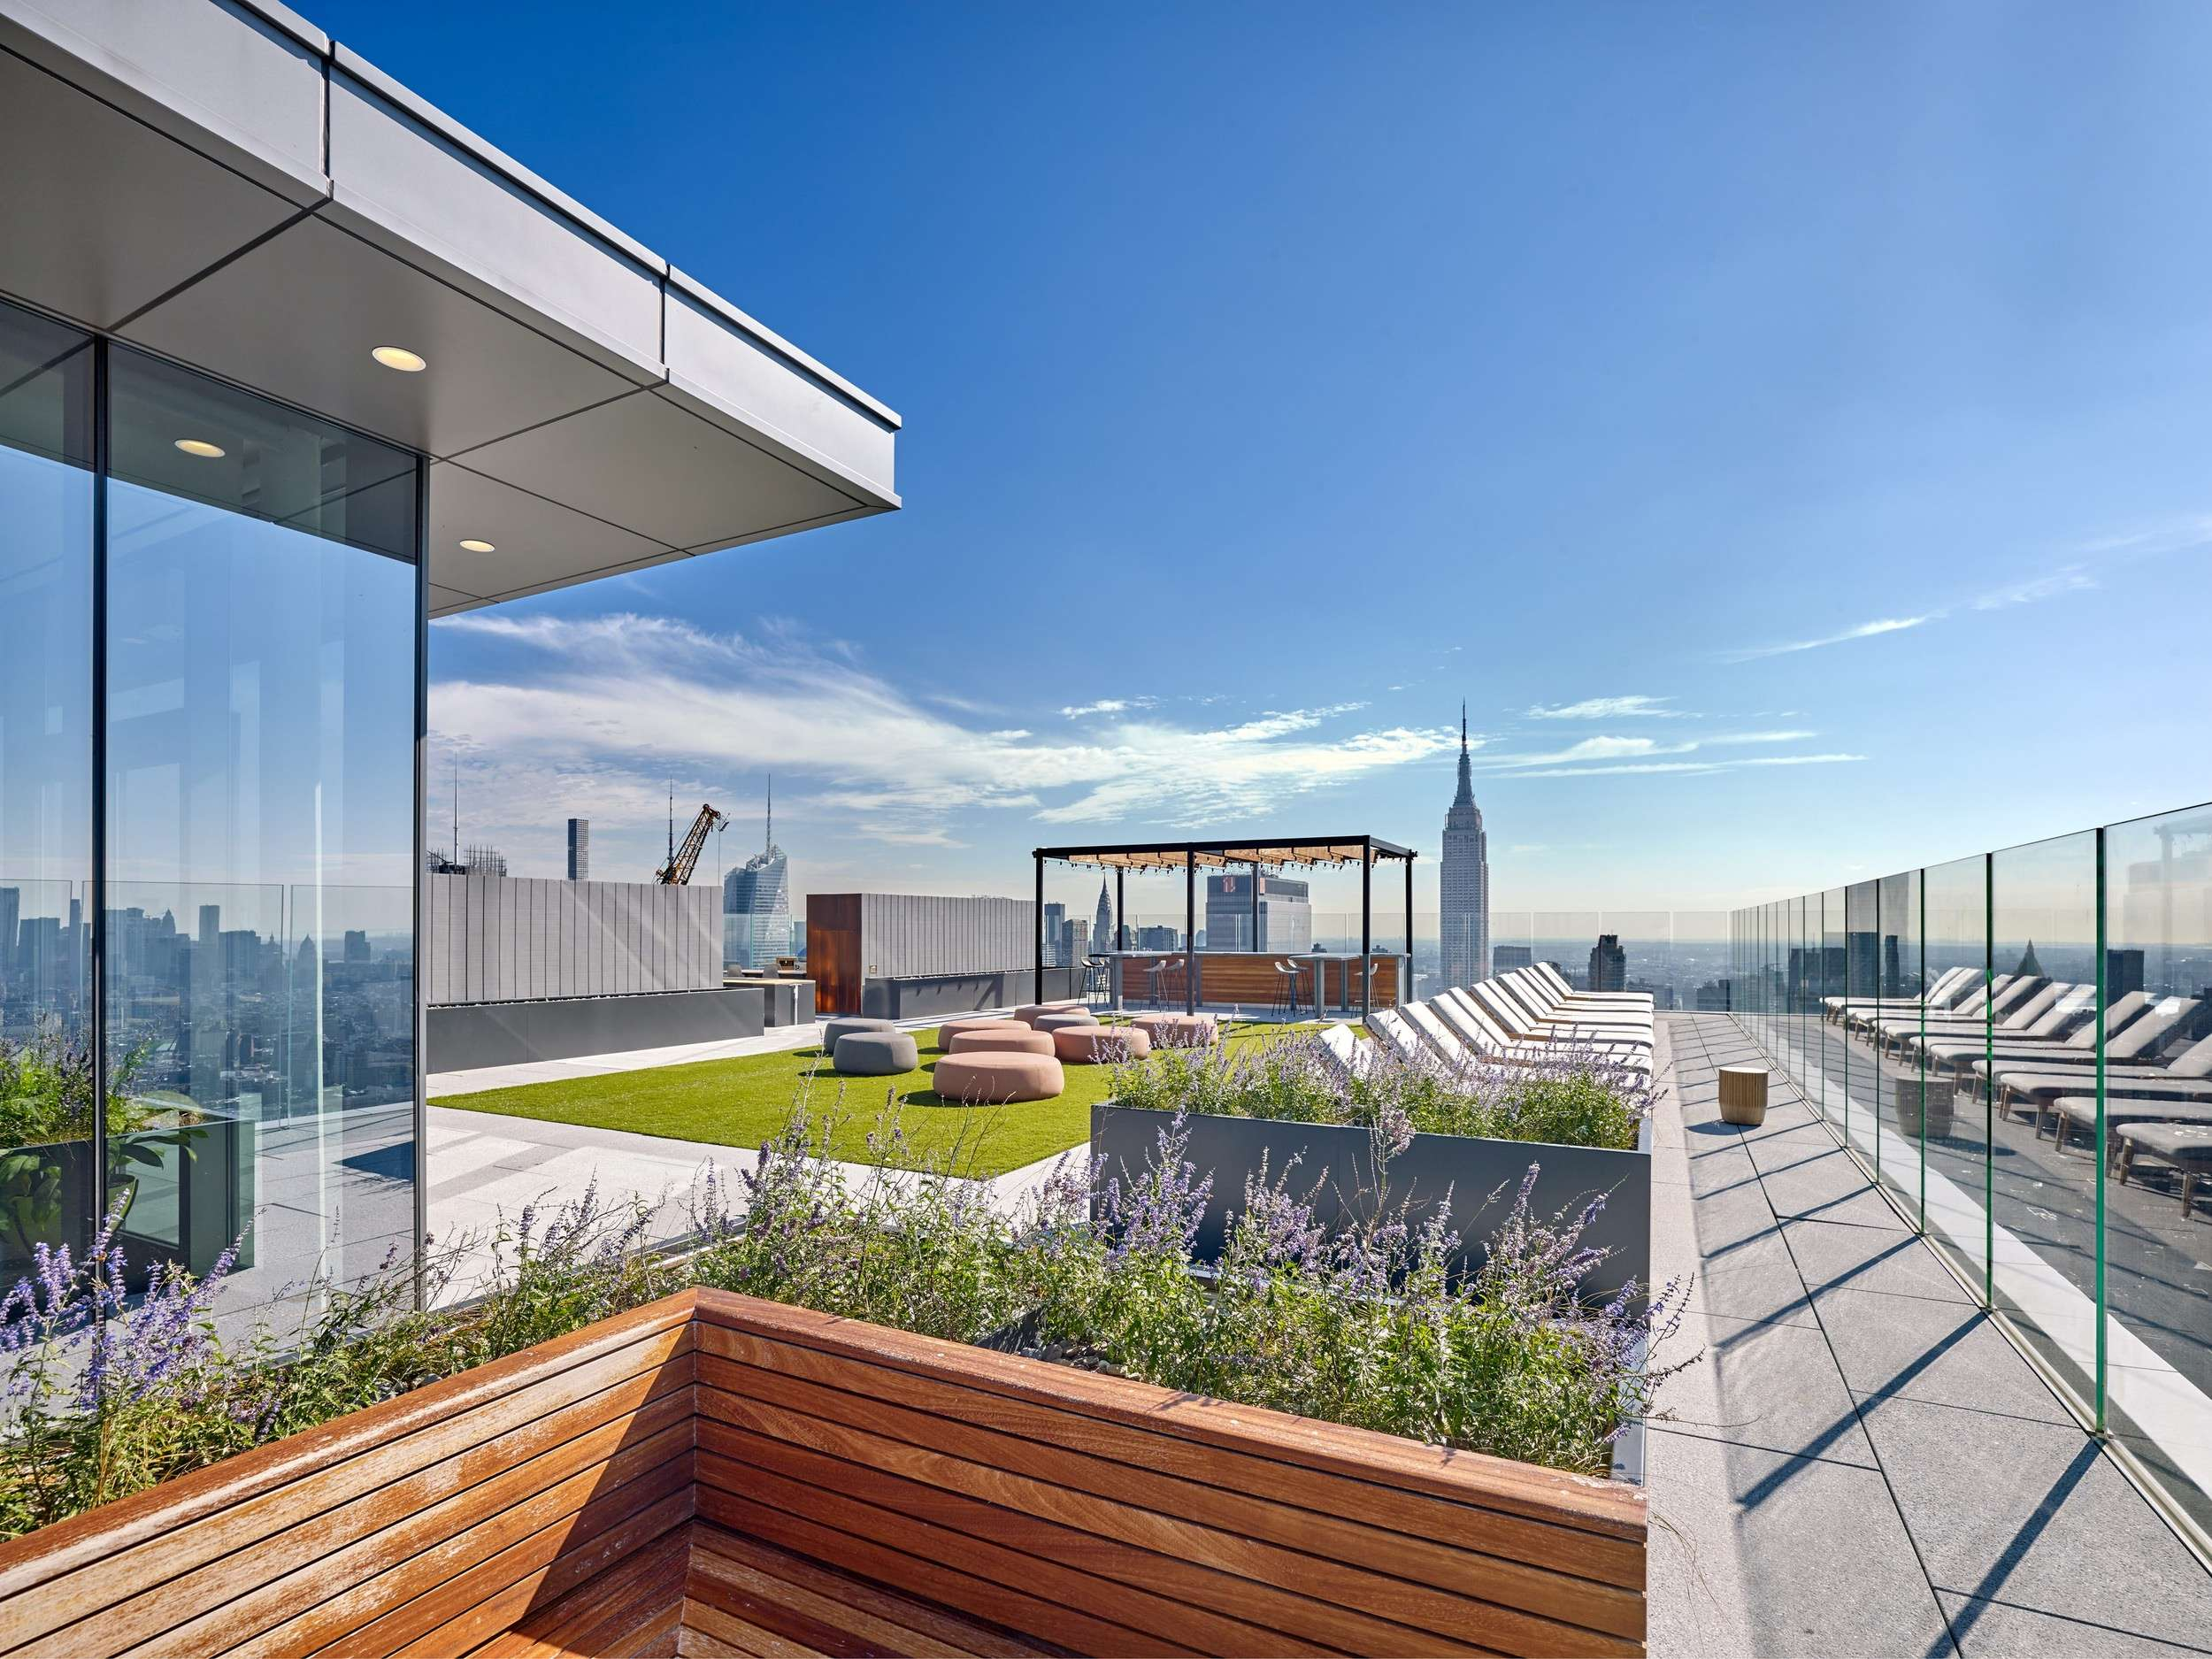 An outdoor sitting area that is located on the roof of a building with grass and plants all around i